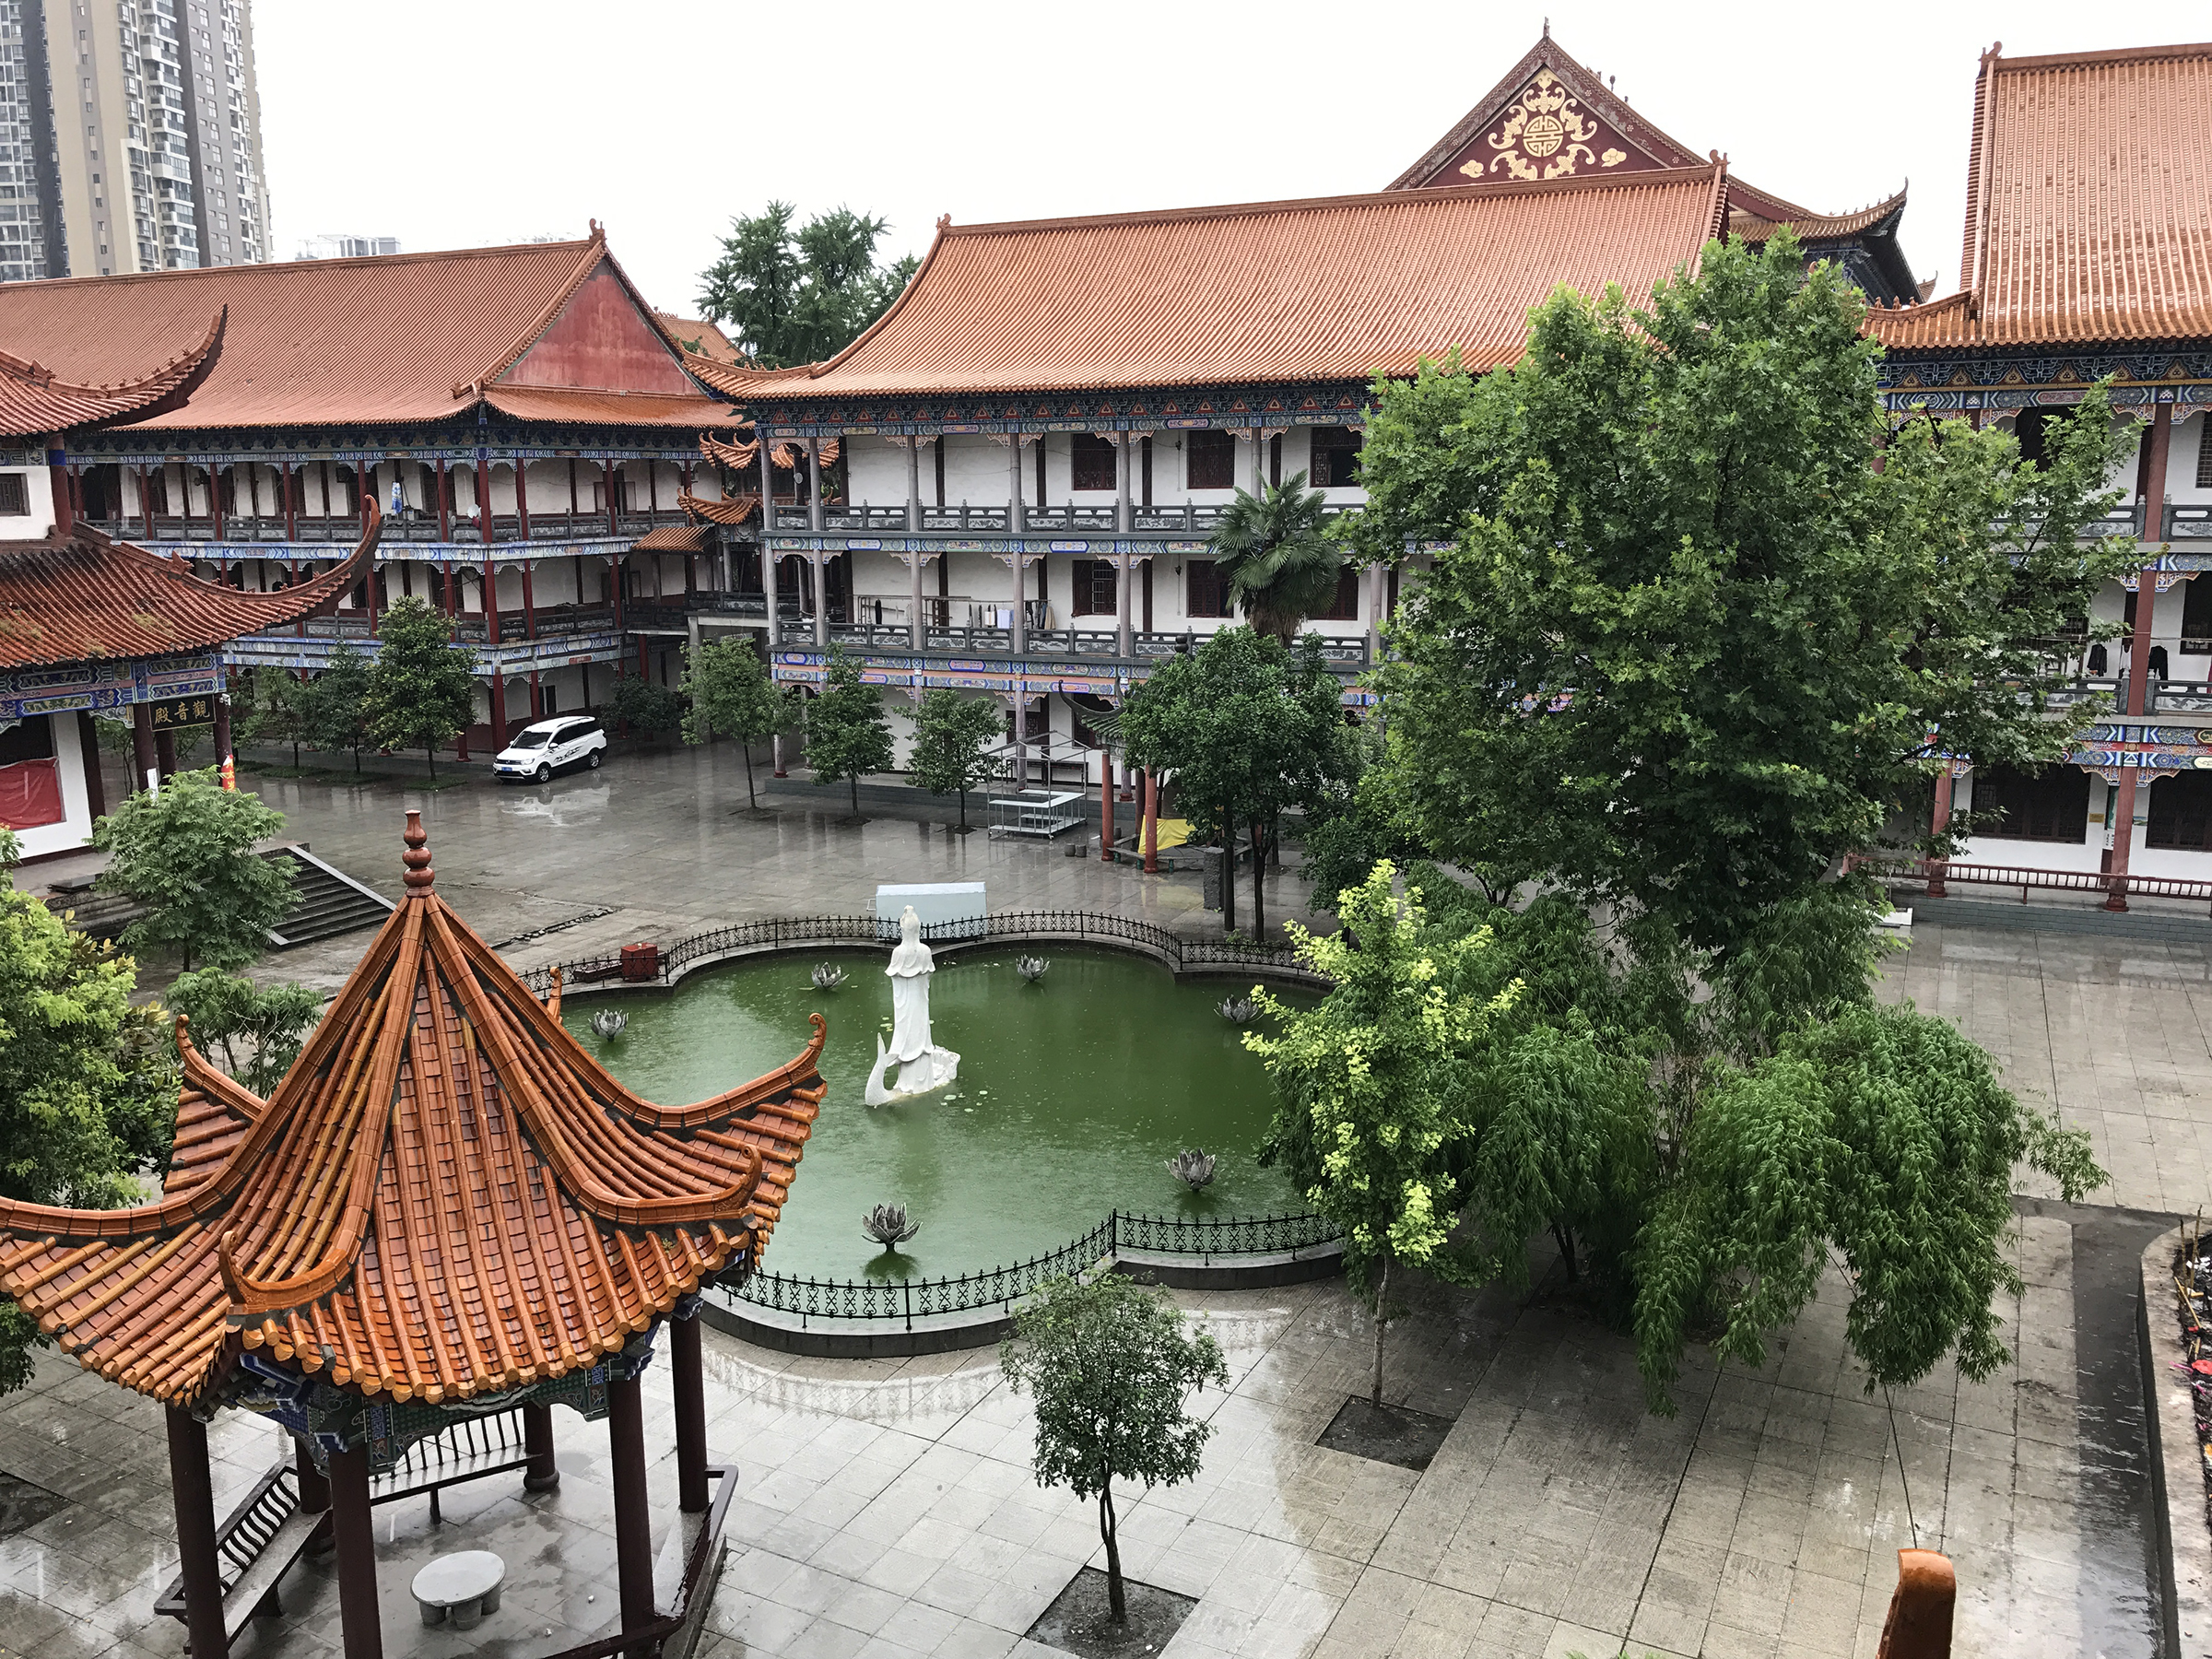 The view from the tower at Zhanghua Monastery,Jingzhou